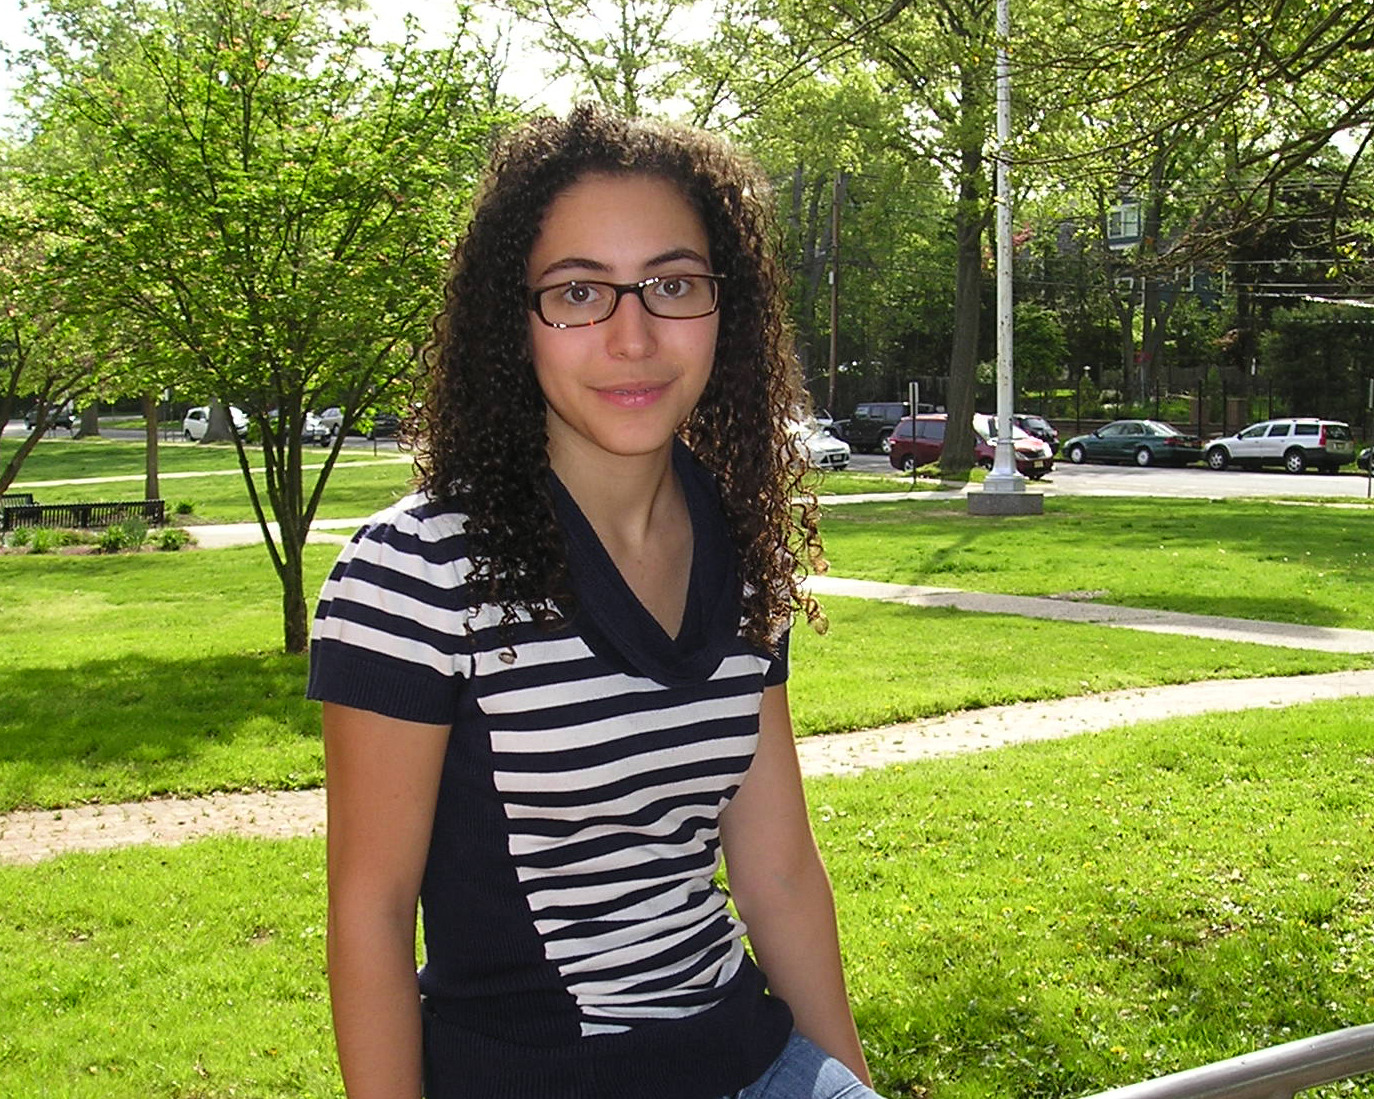 ef664dfcdc048737b21d_Isabella_Gelfand_WHS_Sophomore_CROPPED.jpg